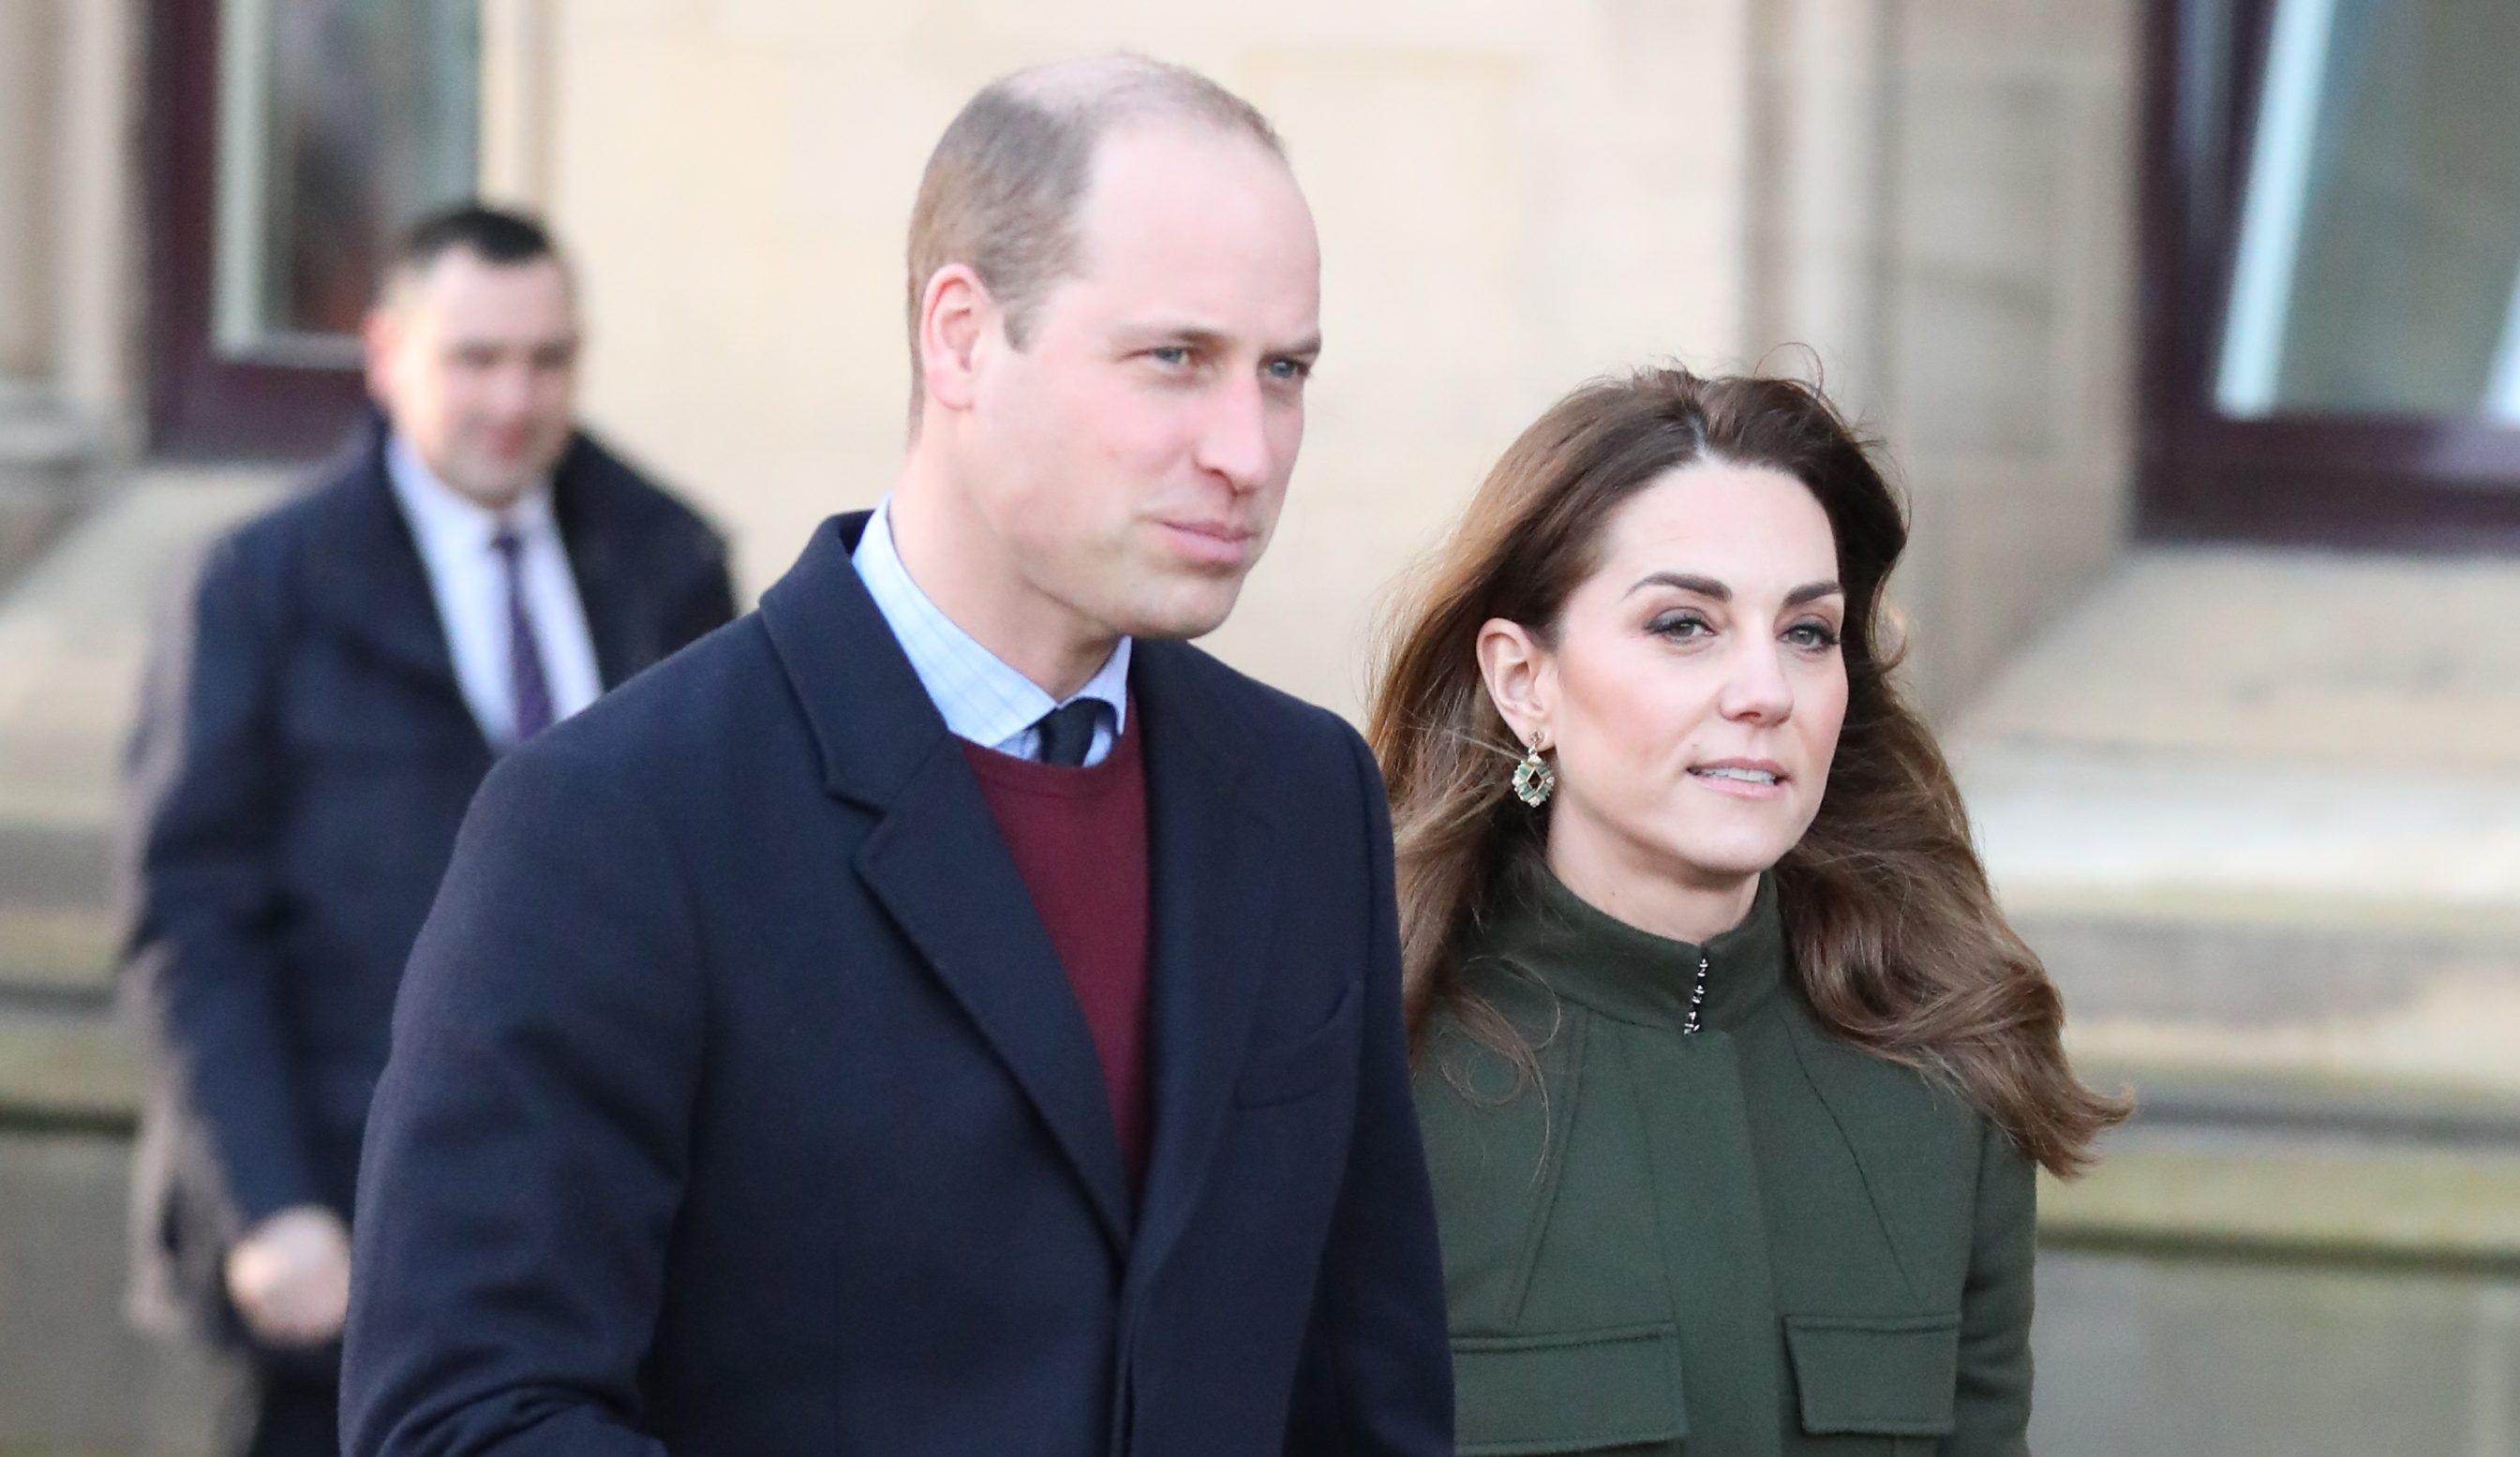 Will and Kate make first joint public appearance since Meghan and Harry crisis